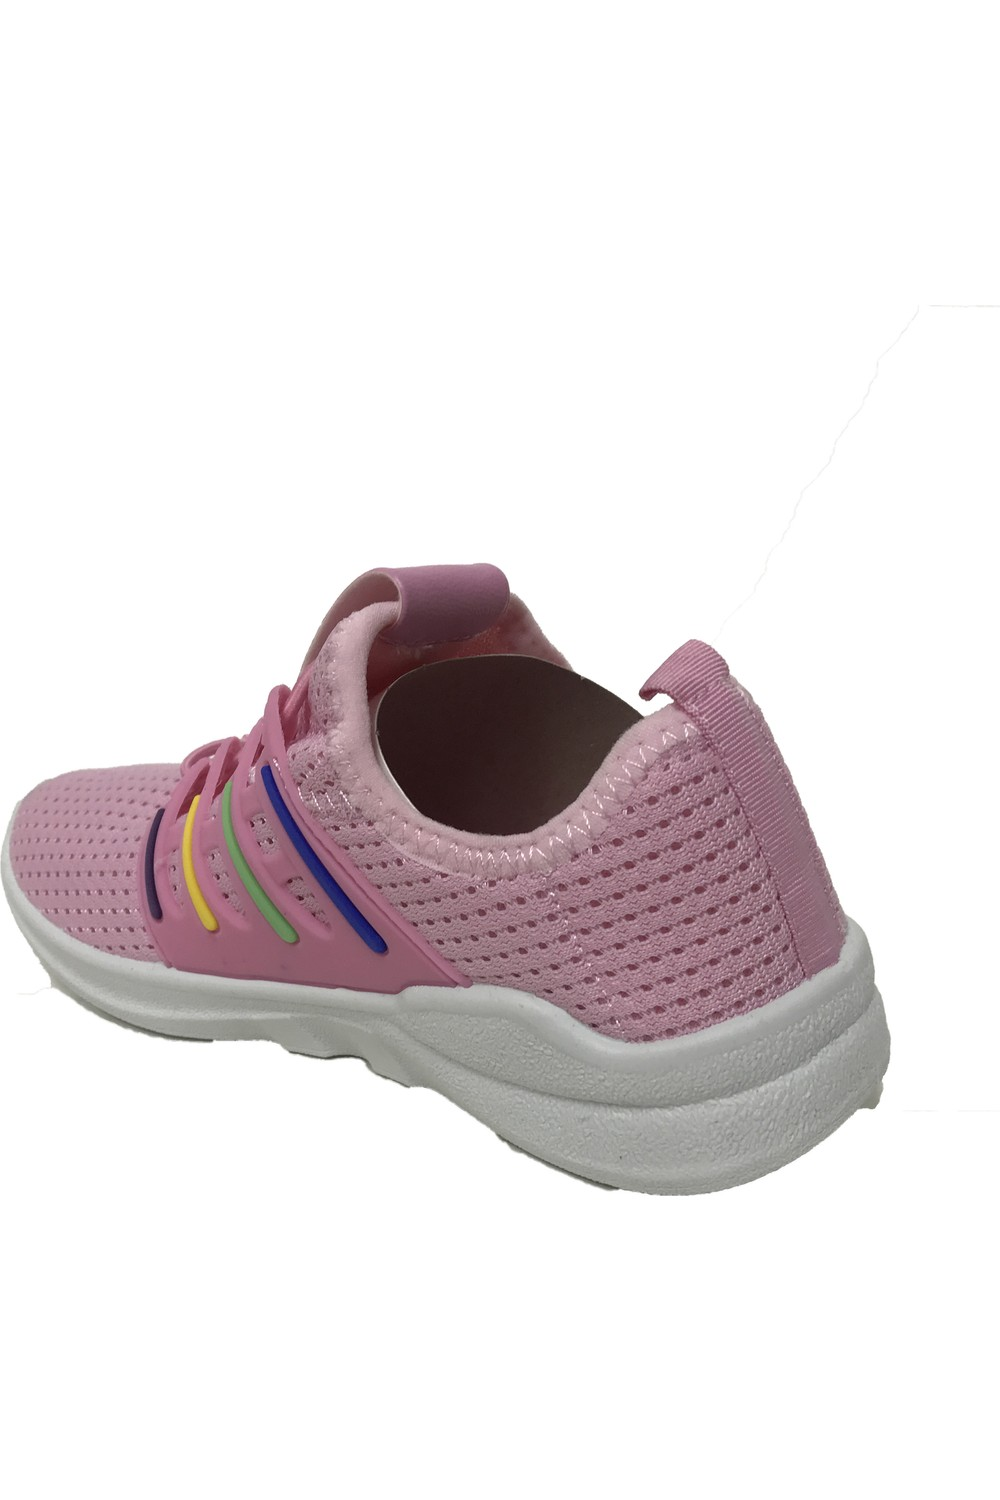 Gezer Children's Sport Shoes Trc22-2922n